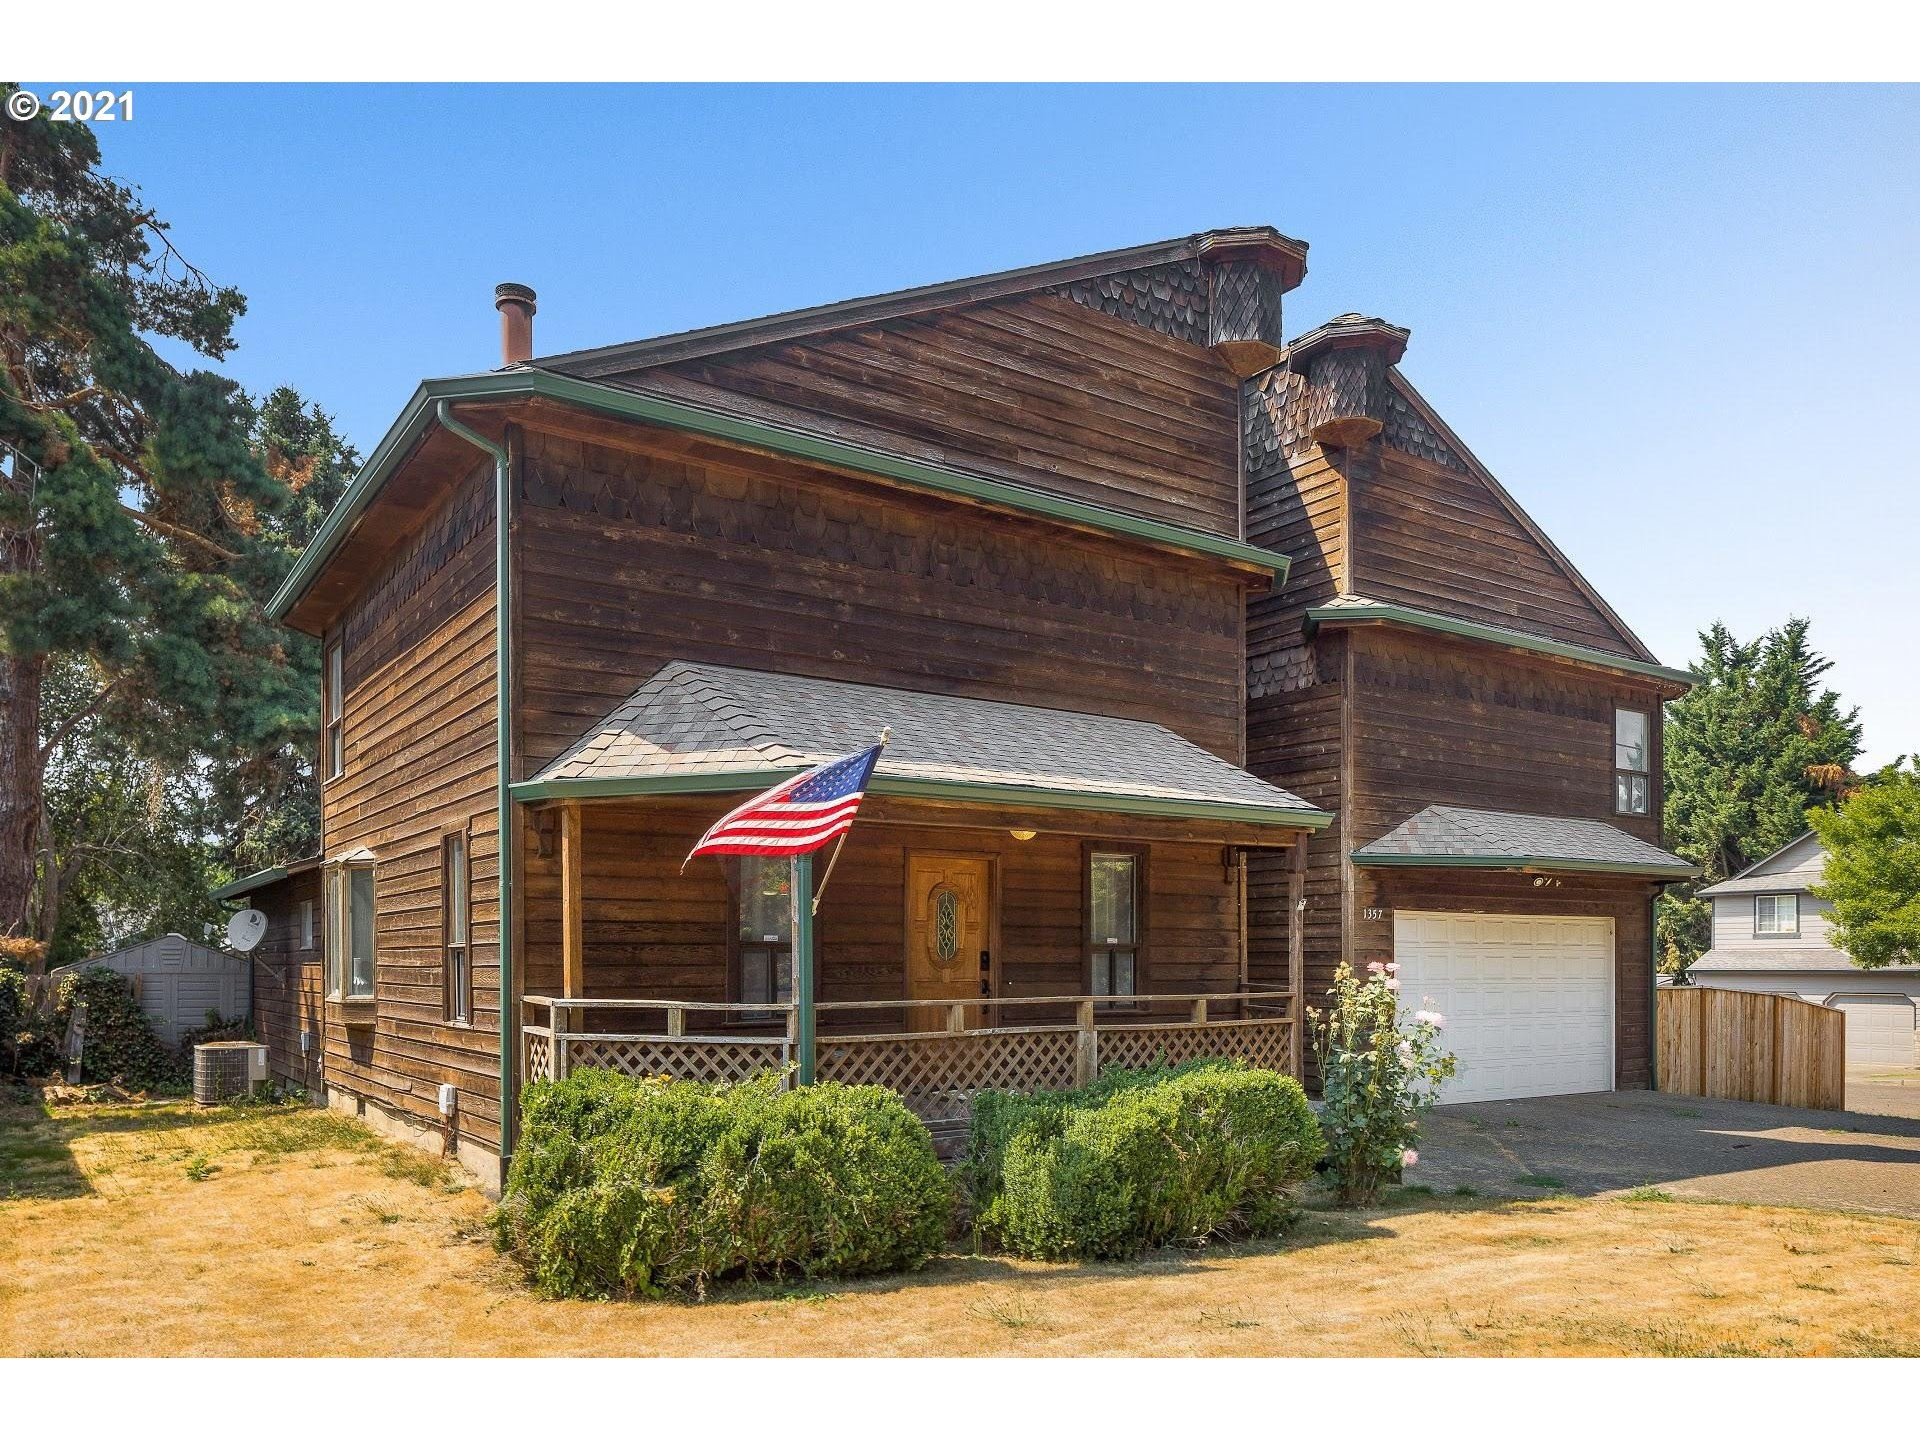 1357 N REDWOOD ST, Canby, OR 97013 - MLS#: 21157657